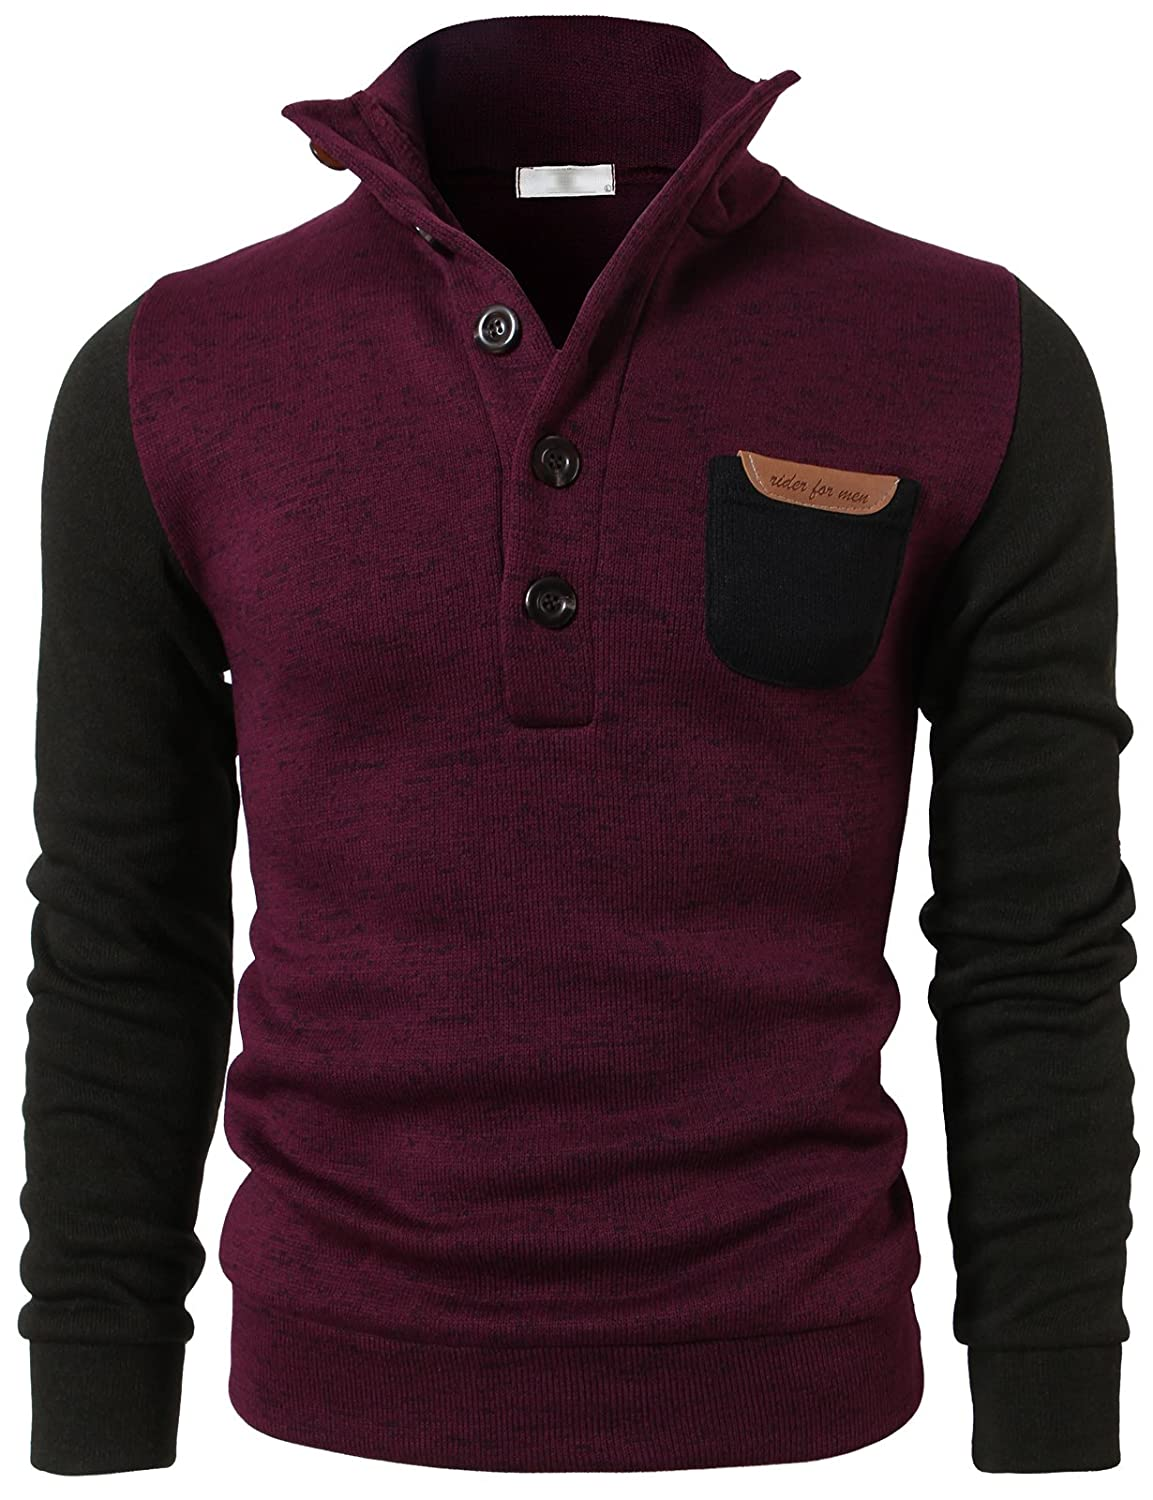 H2H Mens Fashion Casual Solid Button Pointed High-neck Fleece Lining Sweater